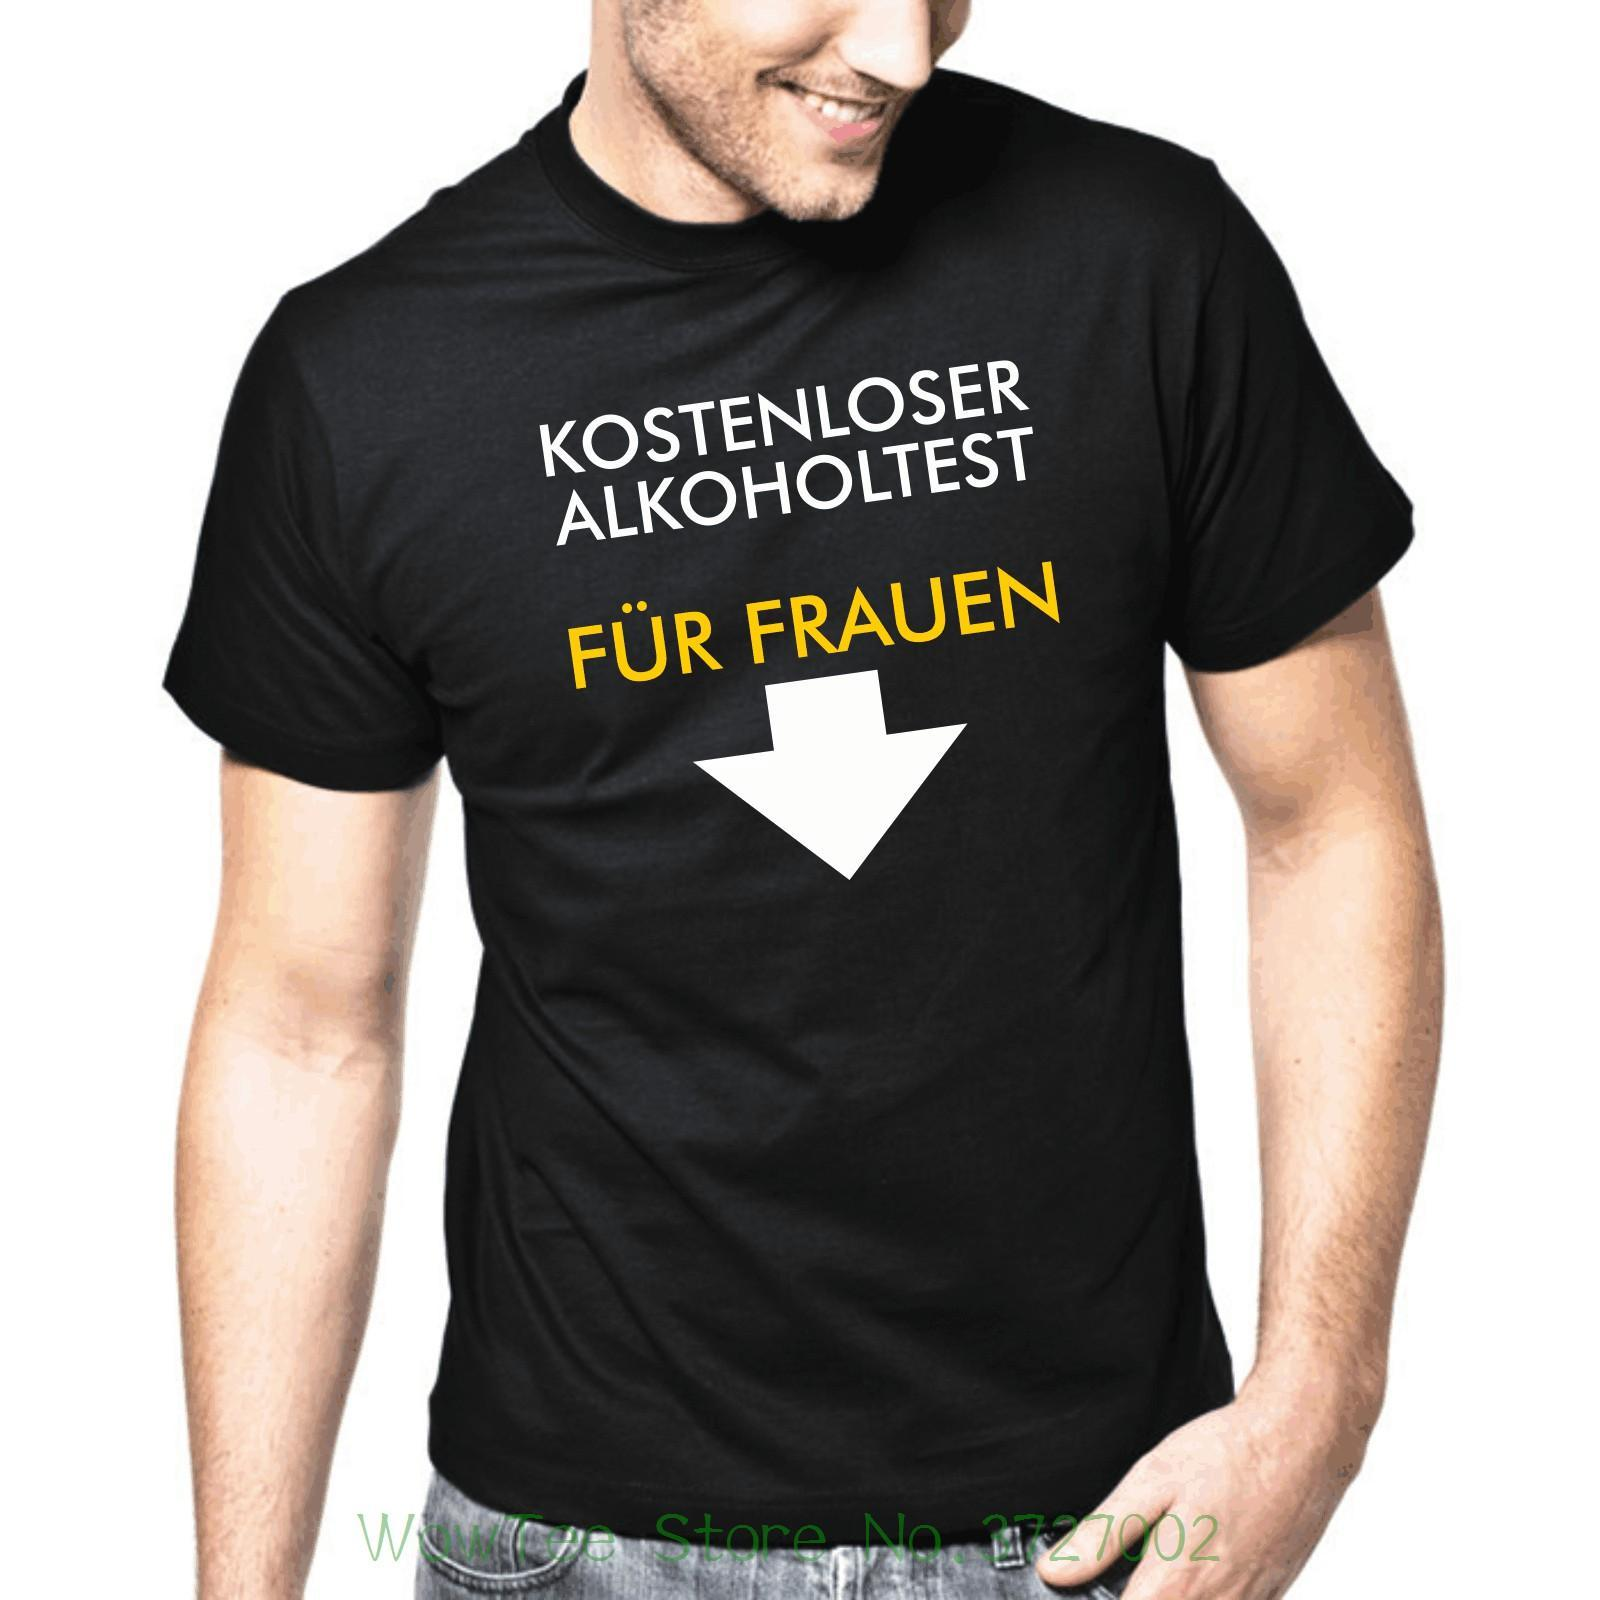 Lieblich Kostenloser Alkoholtest Fur Frauen Spruche Party Fun S Xxl T Shirt Funny  Tees Men Short Comedy T Shirt Humorous T Shirt From Jie032, $14.67|  DHgate.Com